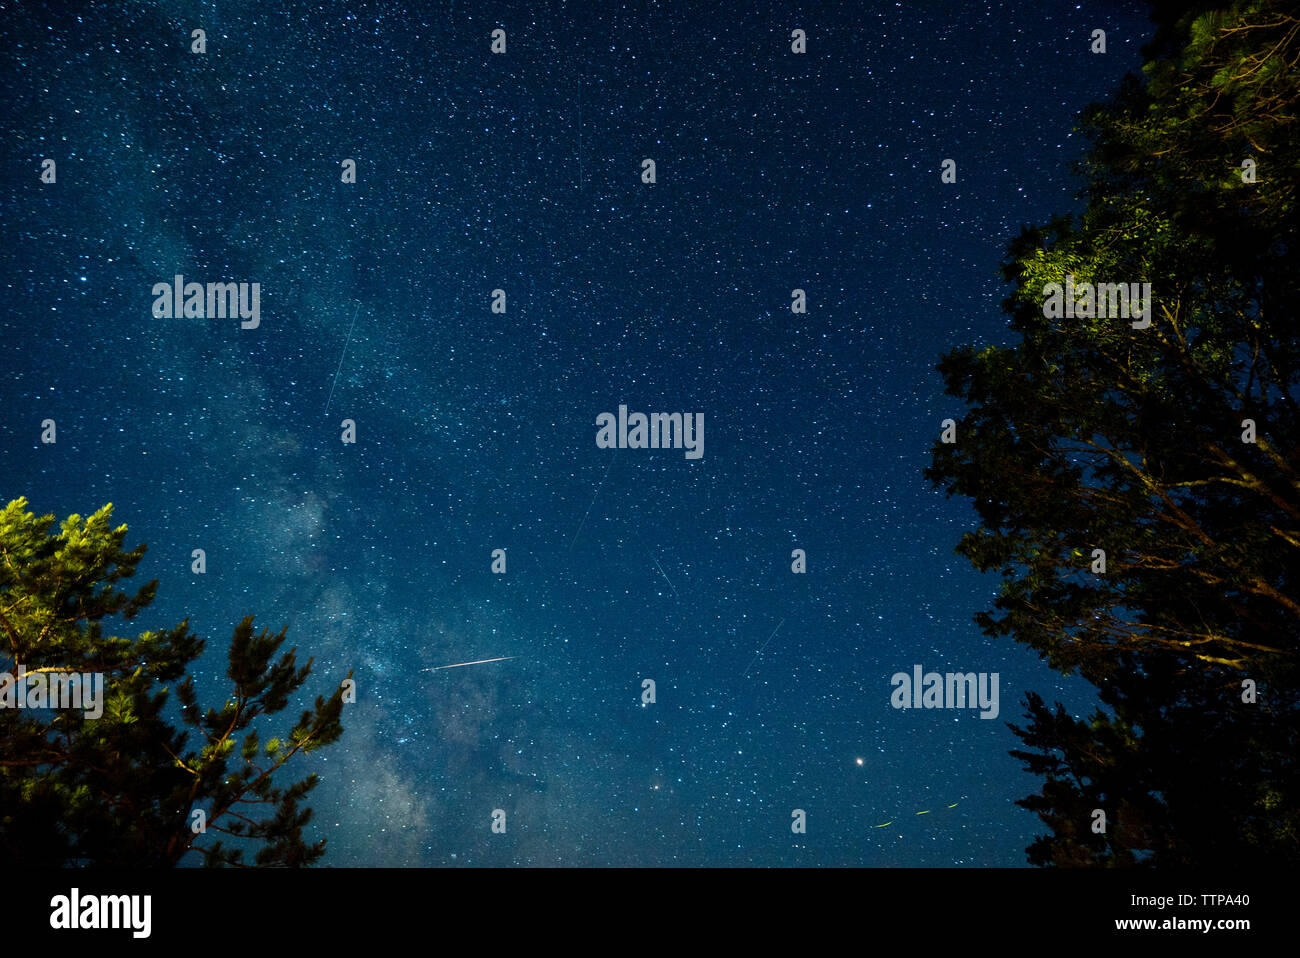 Low angle view of star field Stock Photo